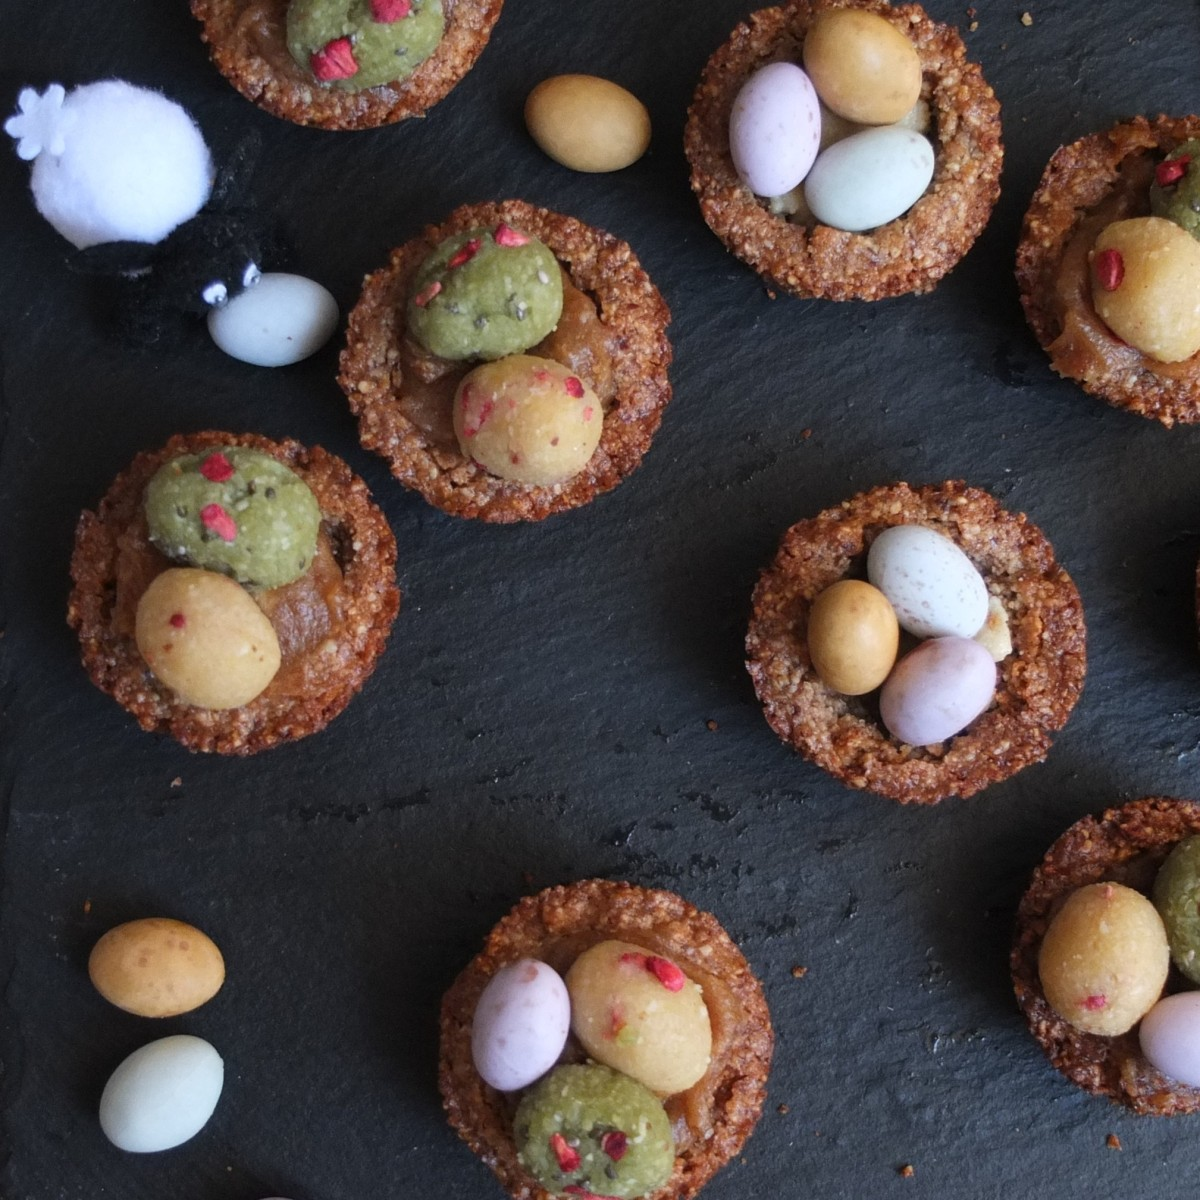 Vegan cinnamon spiced cookie nests or cups recipe!  Gluten free and refined sugar free... plus other Easter recipes!